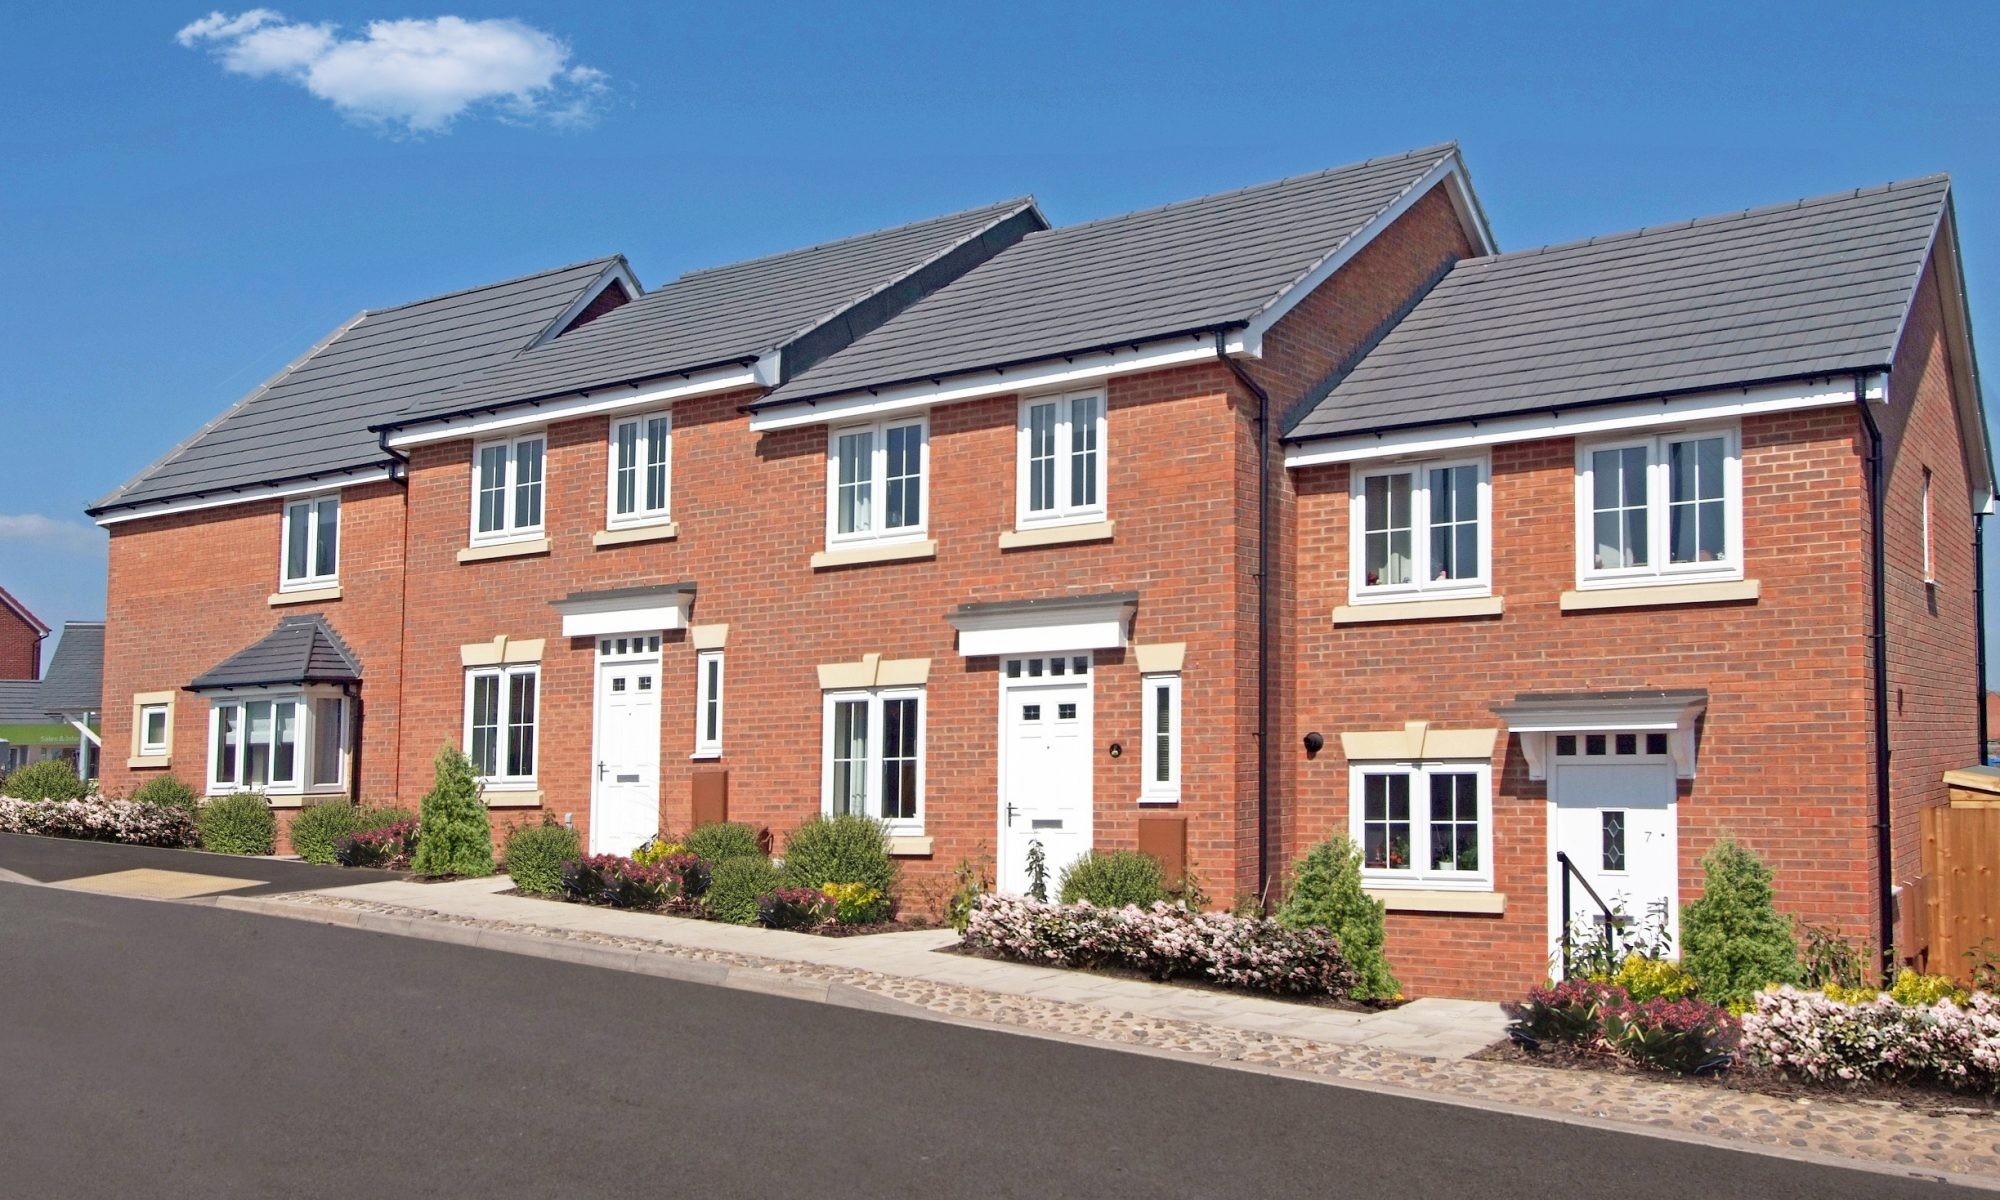 New Build Homes Stockport, Cheshire | JML Developments